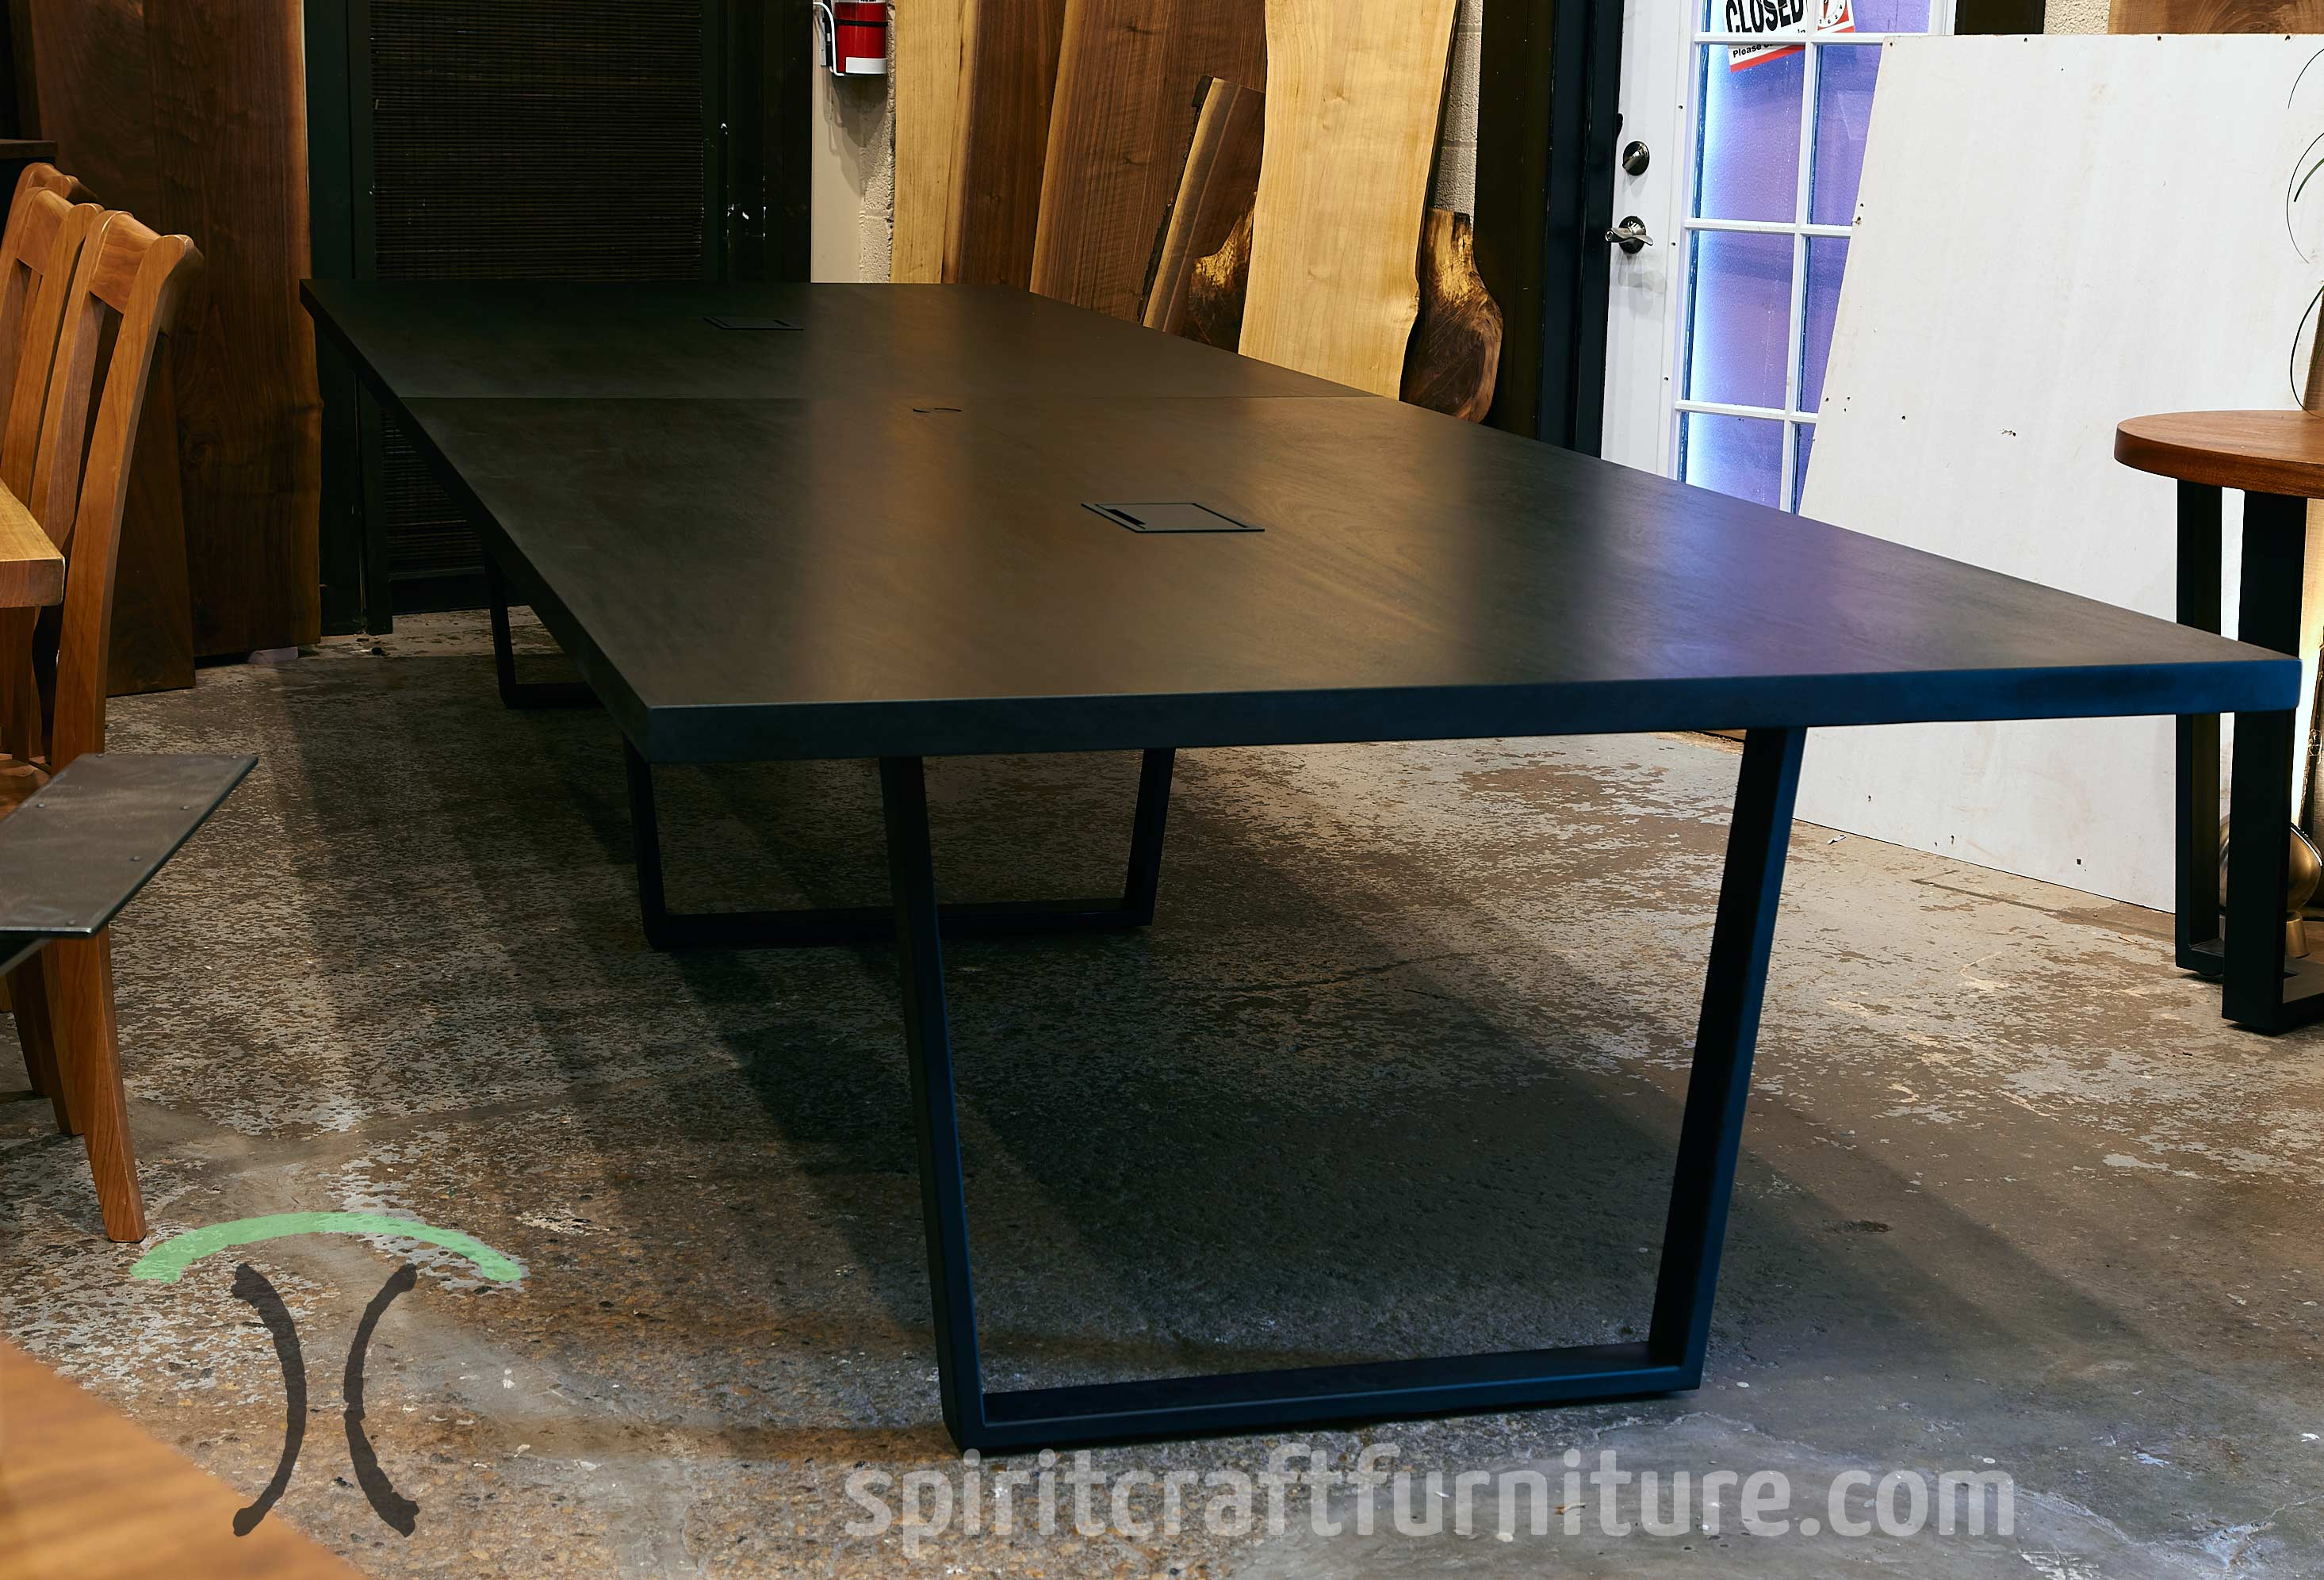 Massive 192 x 54 Sapele Mahogany Conference Table with Custom Legs and Mockett Grommets, Stained in Dark Walnut handcrafted at Spiritcraft Furniture in East Dundee, Illinois